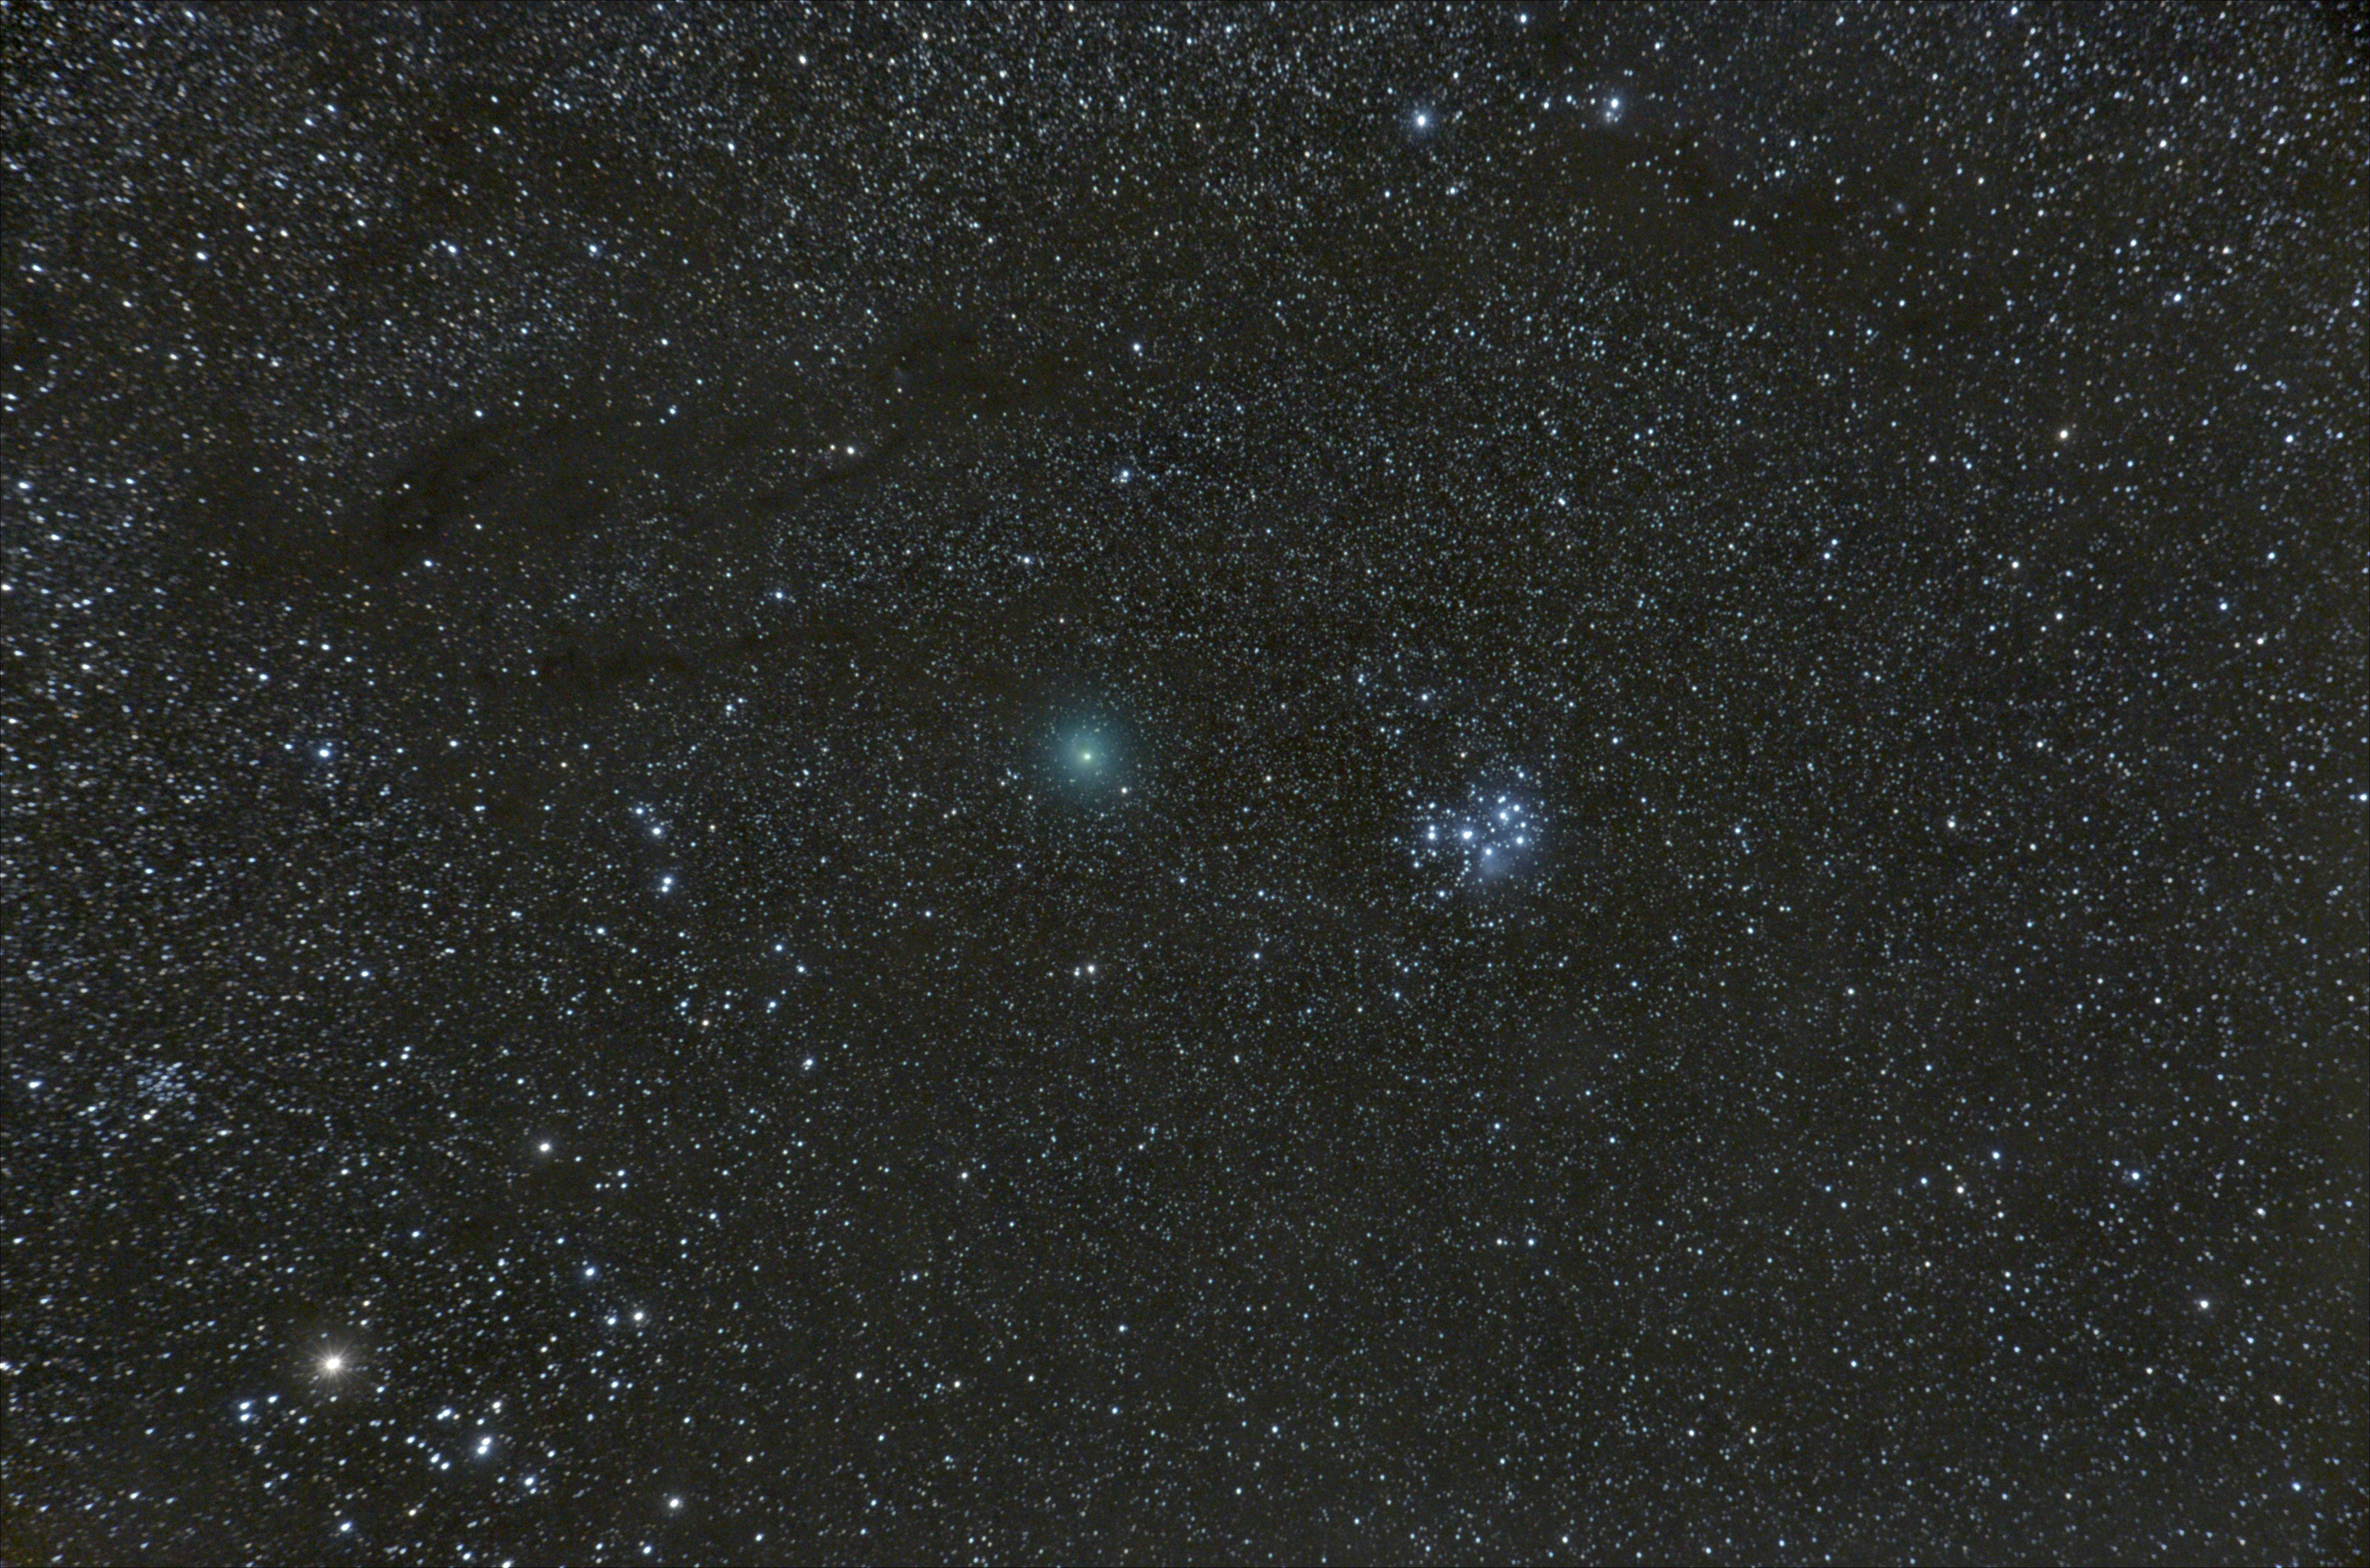 Comet Wirtanen passing the Pleiades on December 17th 2018